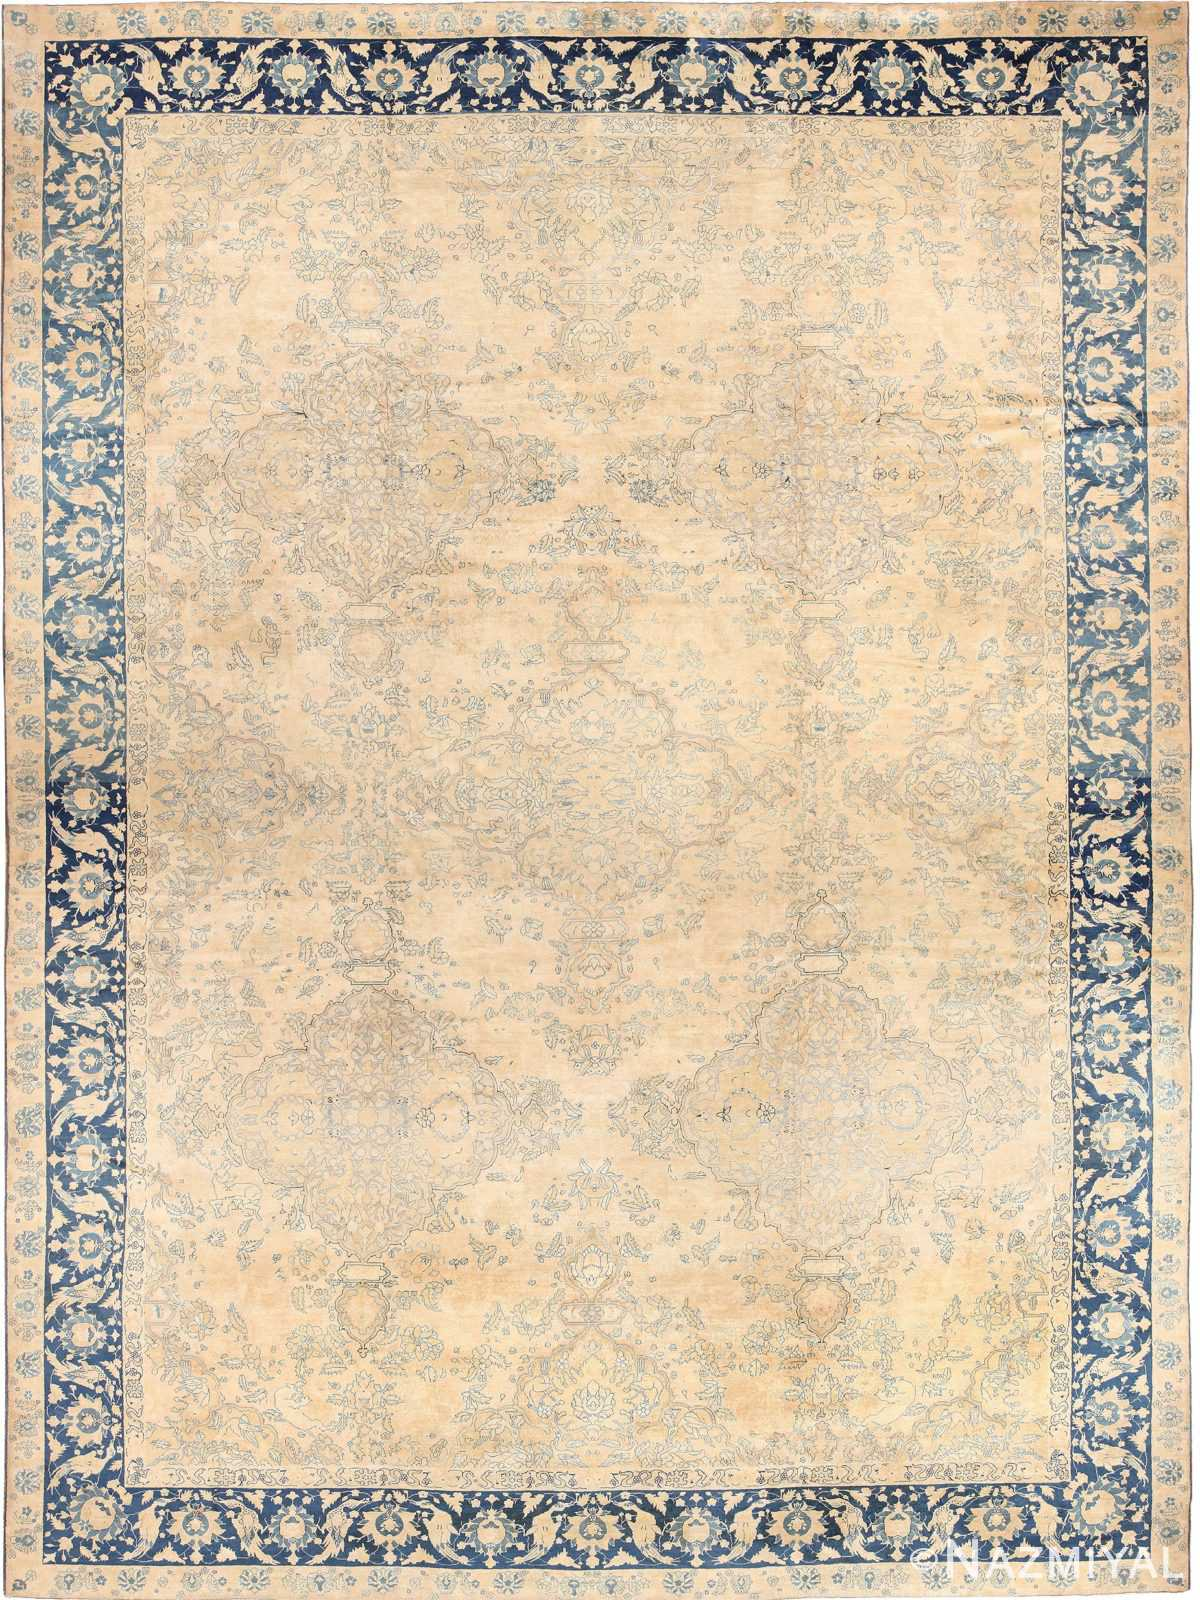 Large Oversized Decorative Antique Indian Agra Rug 49167 Nazmiyal